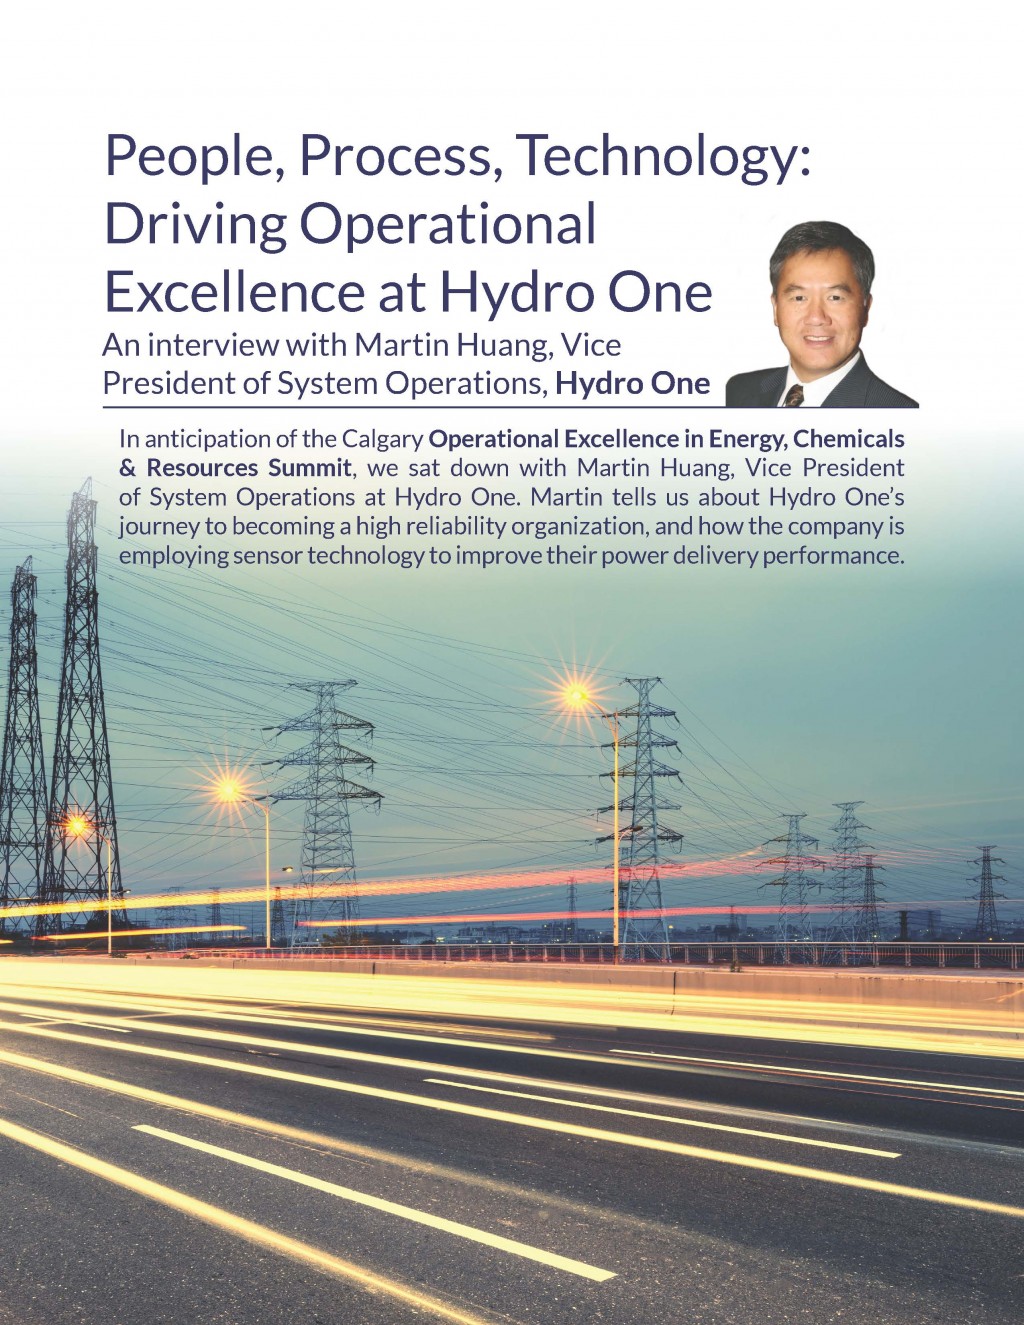 People, Process, Technology: Driving Operational Excellence at Hydro One